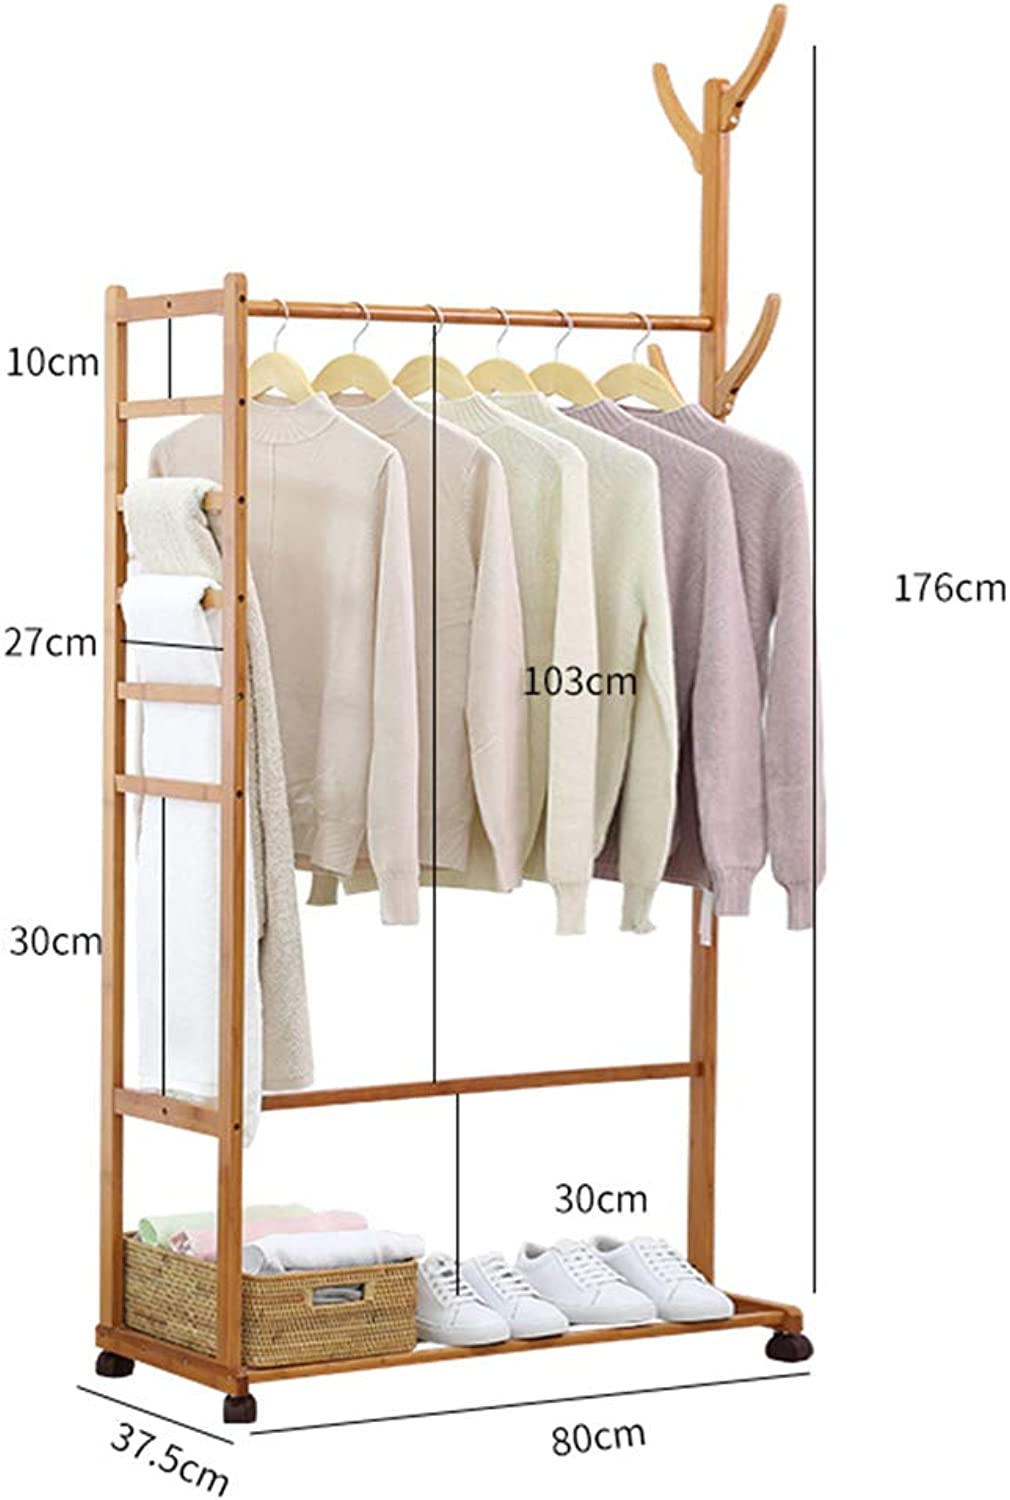 JIANFEI Home Floor Standing Coat Rack Hat Stand Hanger Multifunction It Can Move Storage,Bamboo 6 Size (color   Solid Wood color, Size   80x37.5x176cm)